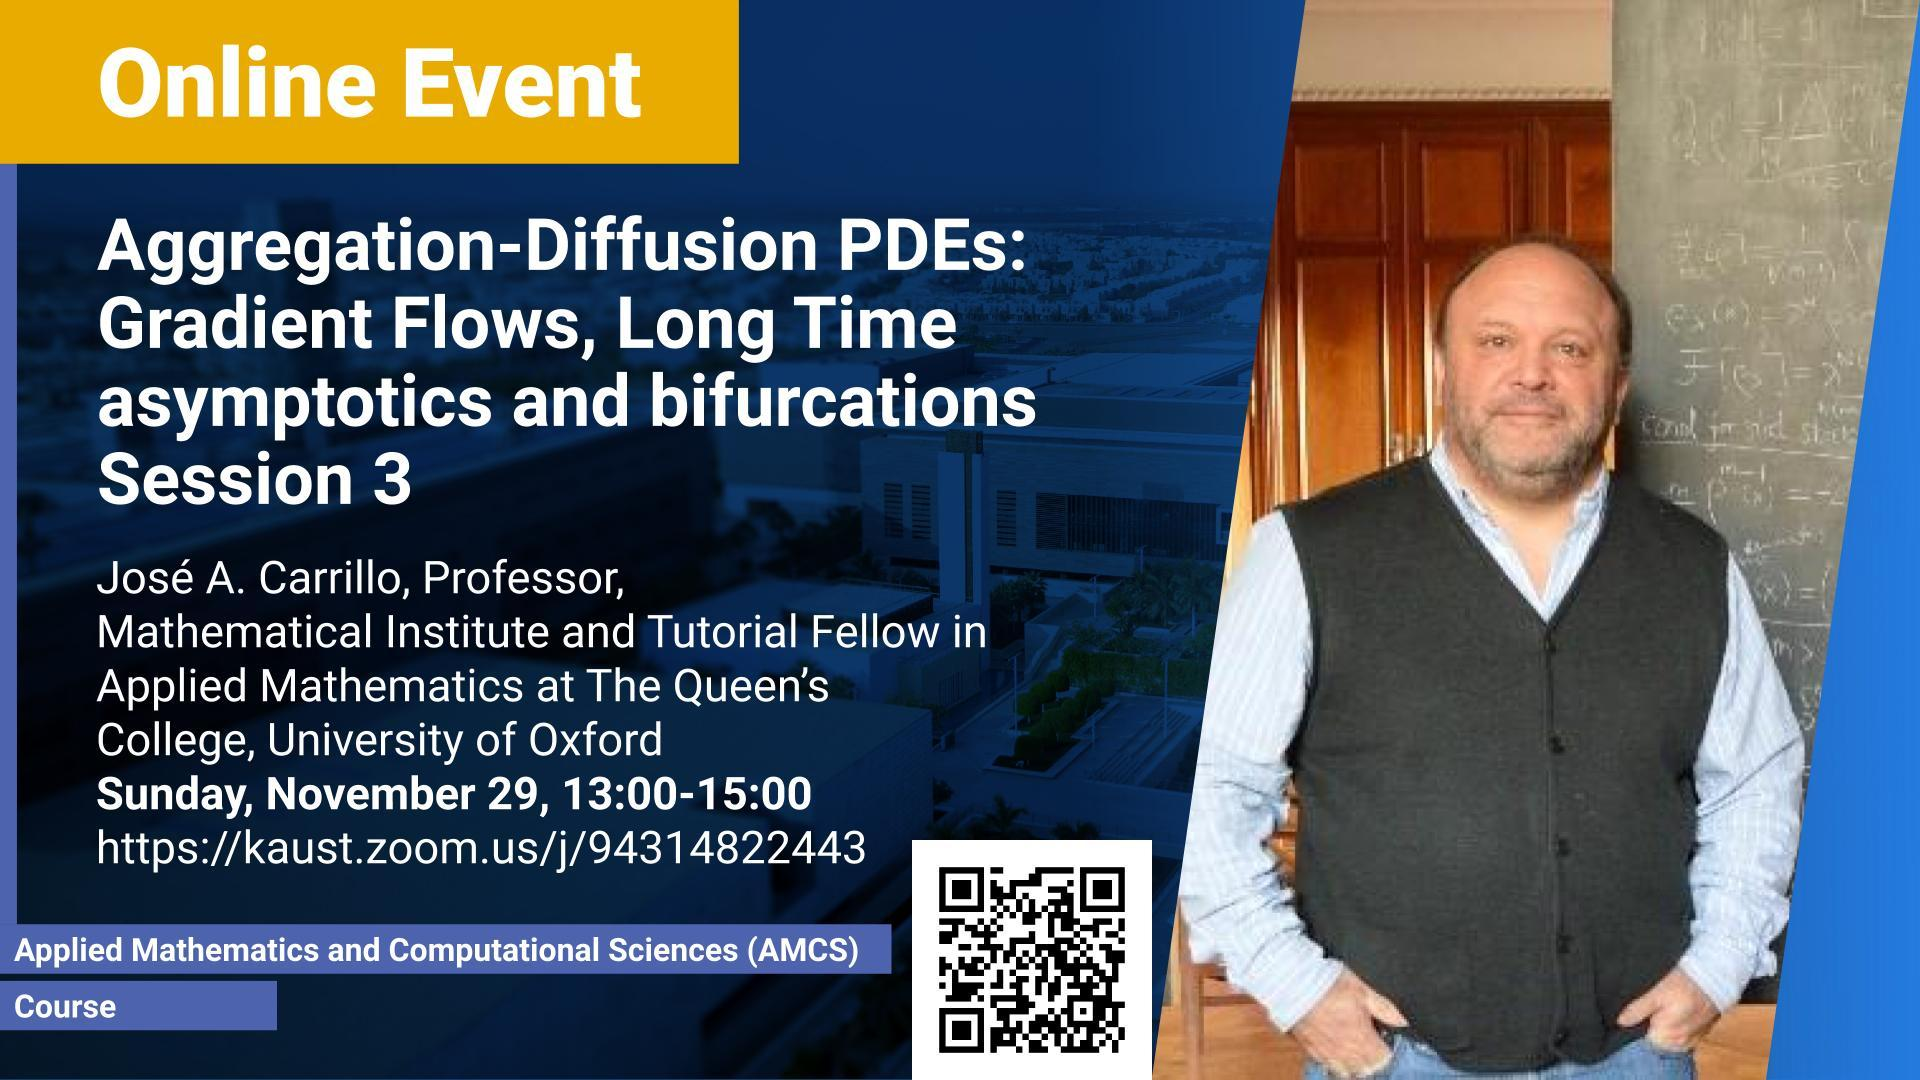 KAUST CEMSE AMCS Jose Carrillo Aggregation Diffusion PDEs Gradient Flows Long Time asymptotics and bifurcations Session 3